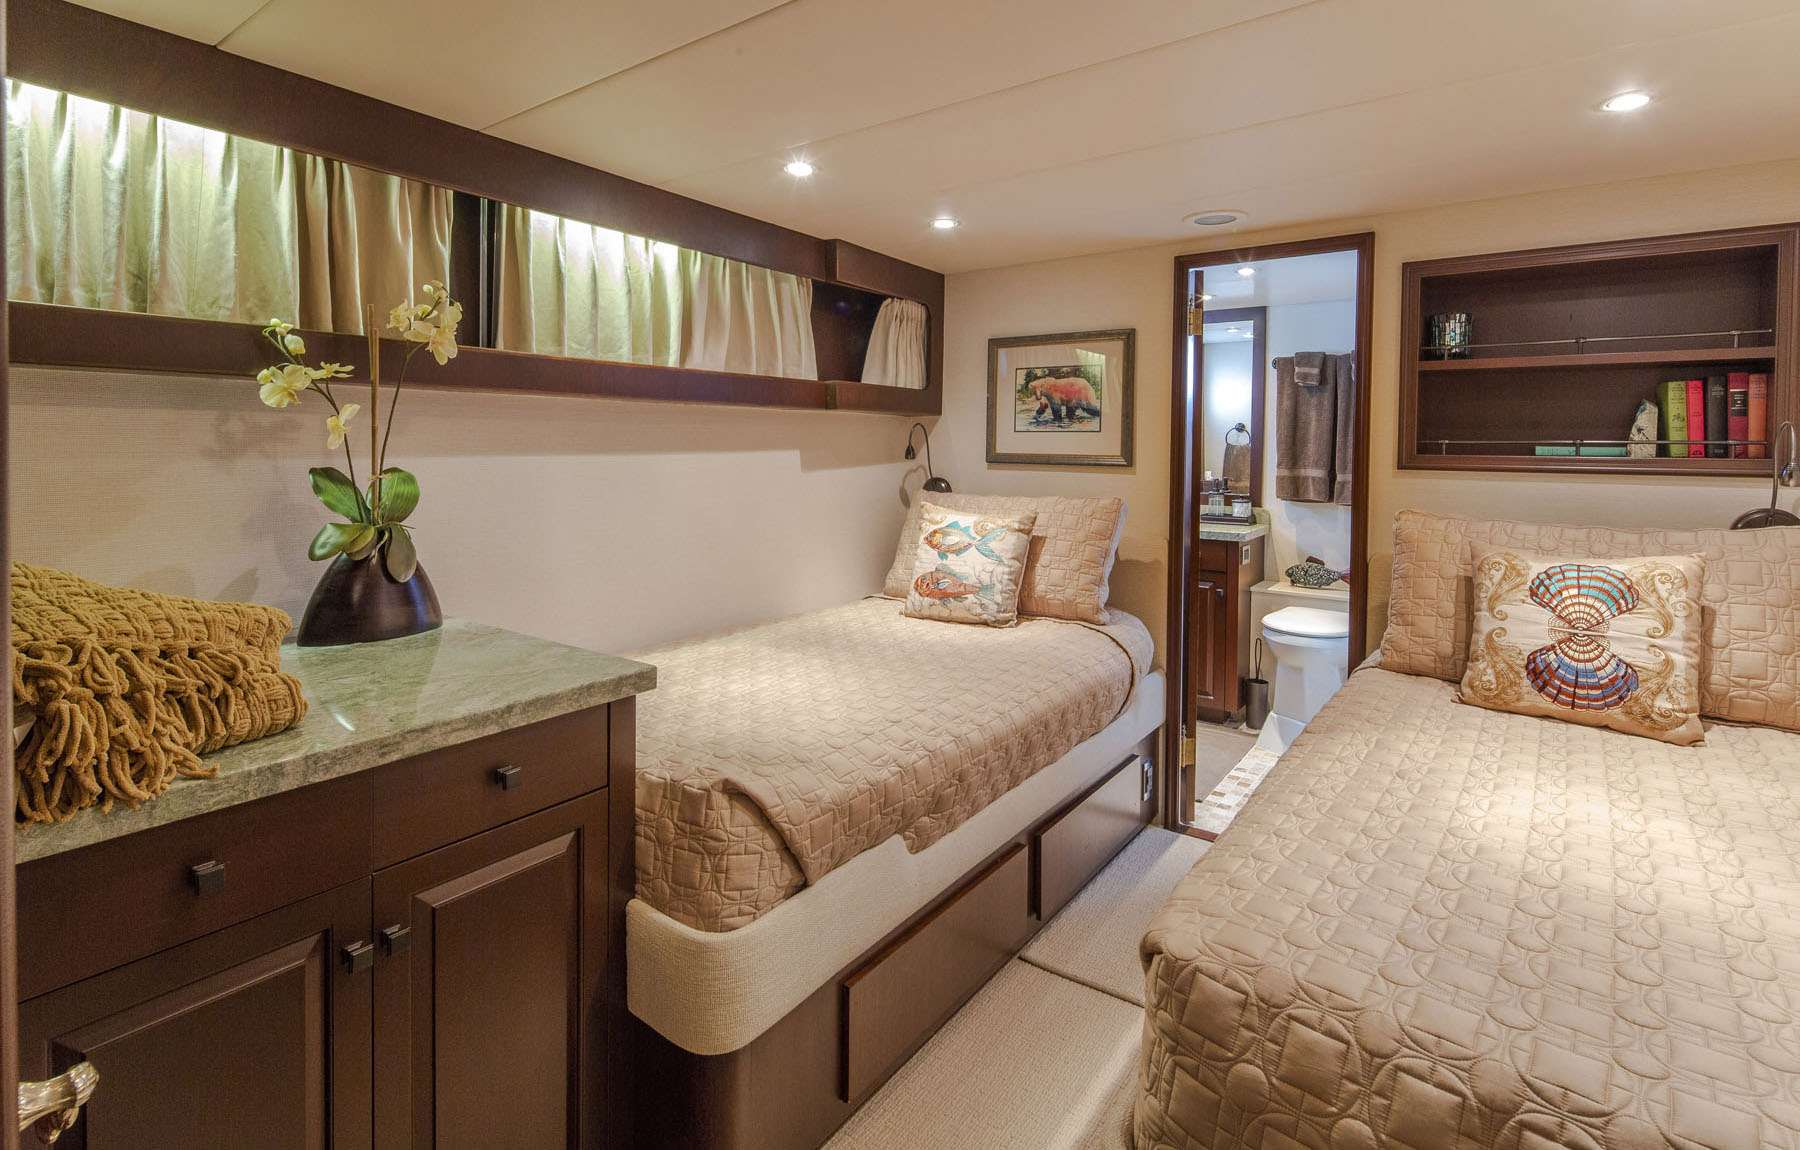 Port Twin Cabin with two single beds and ensuite bathroom.